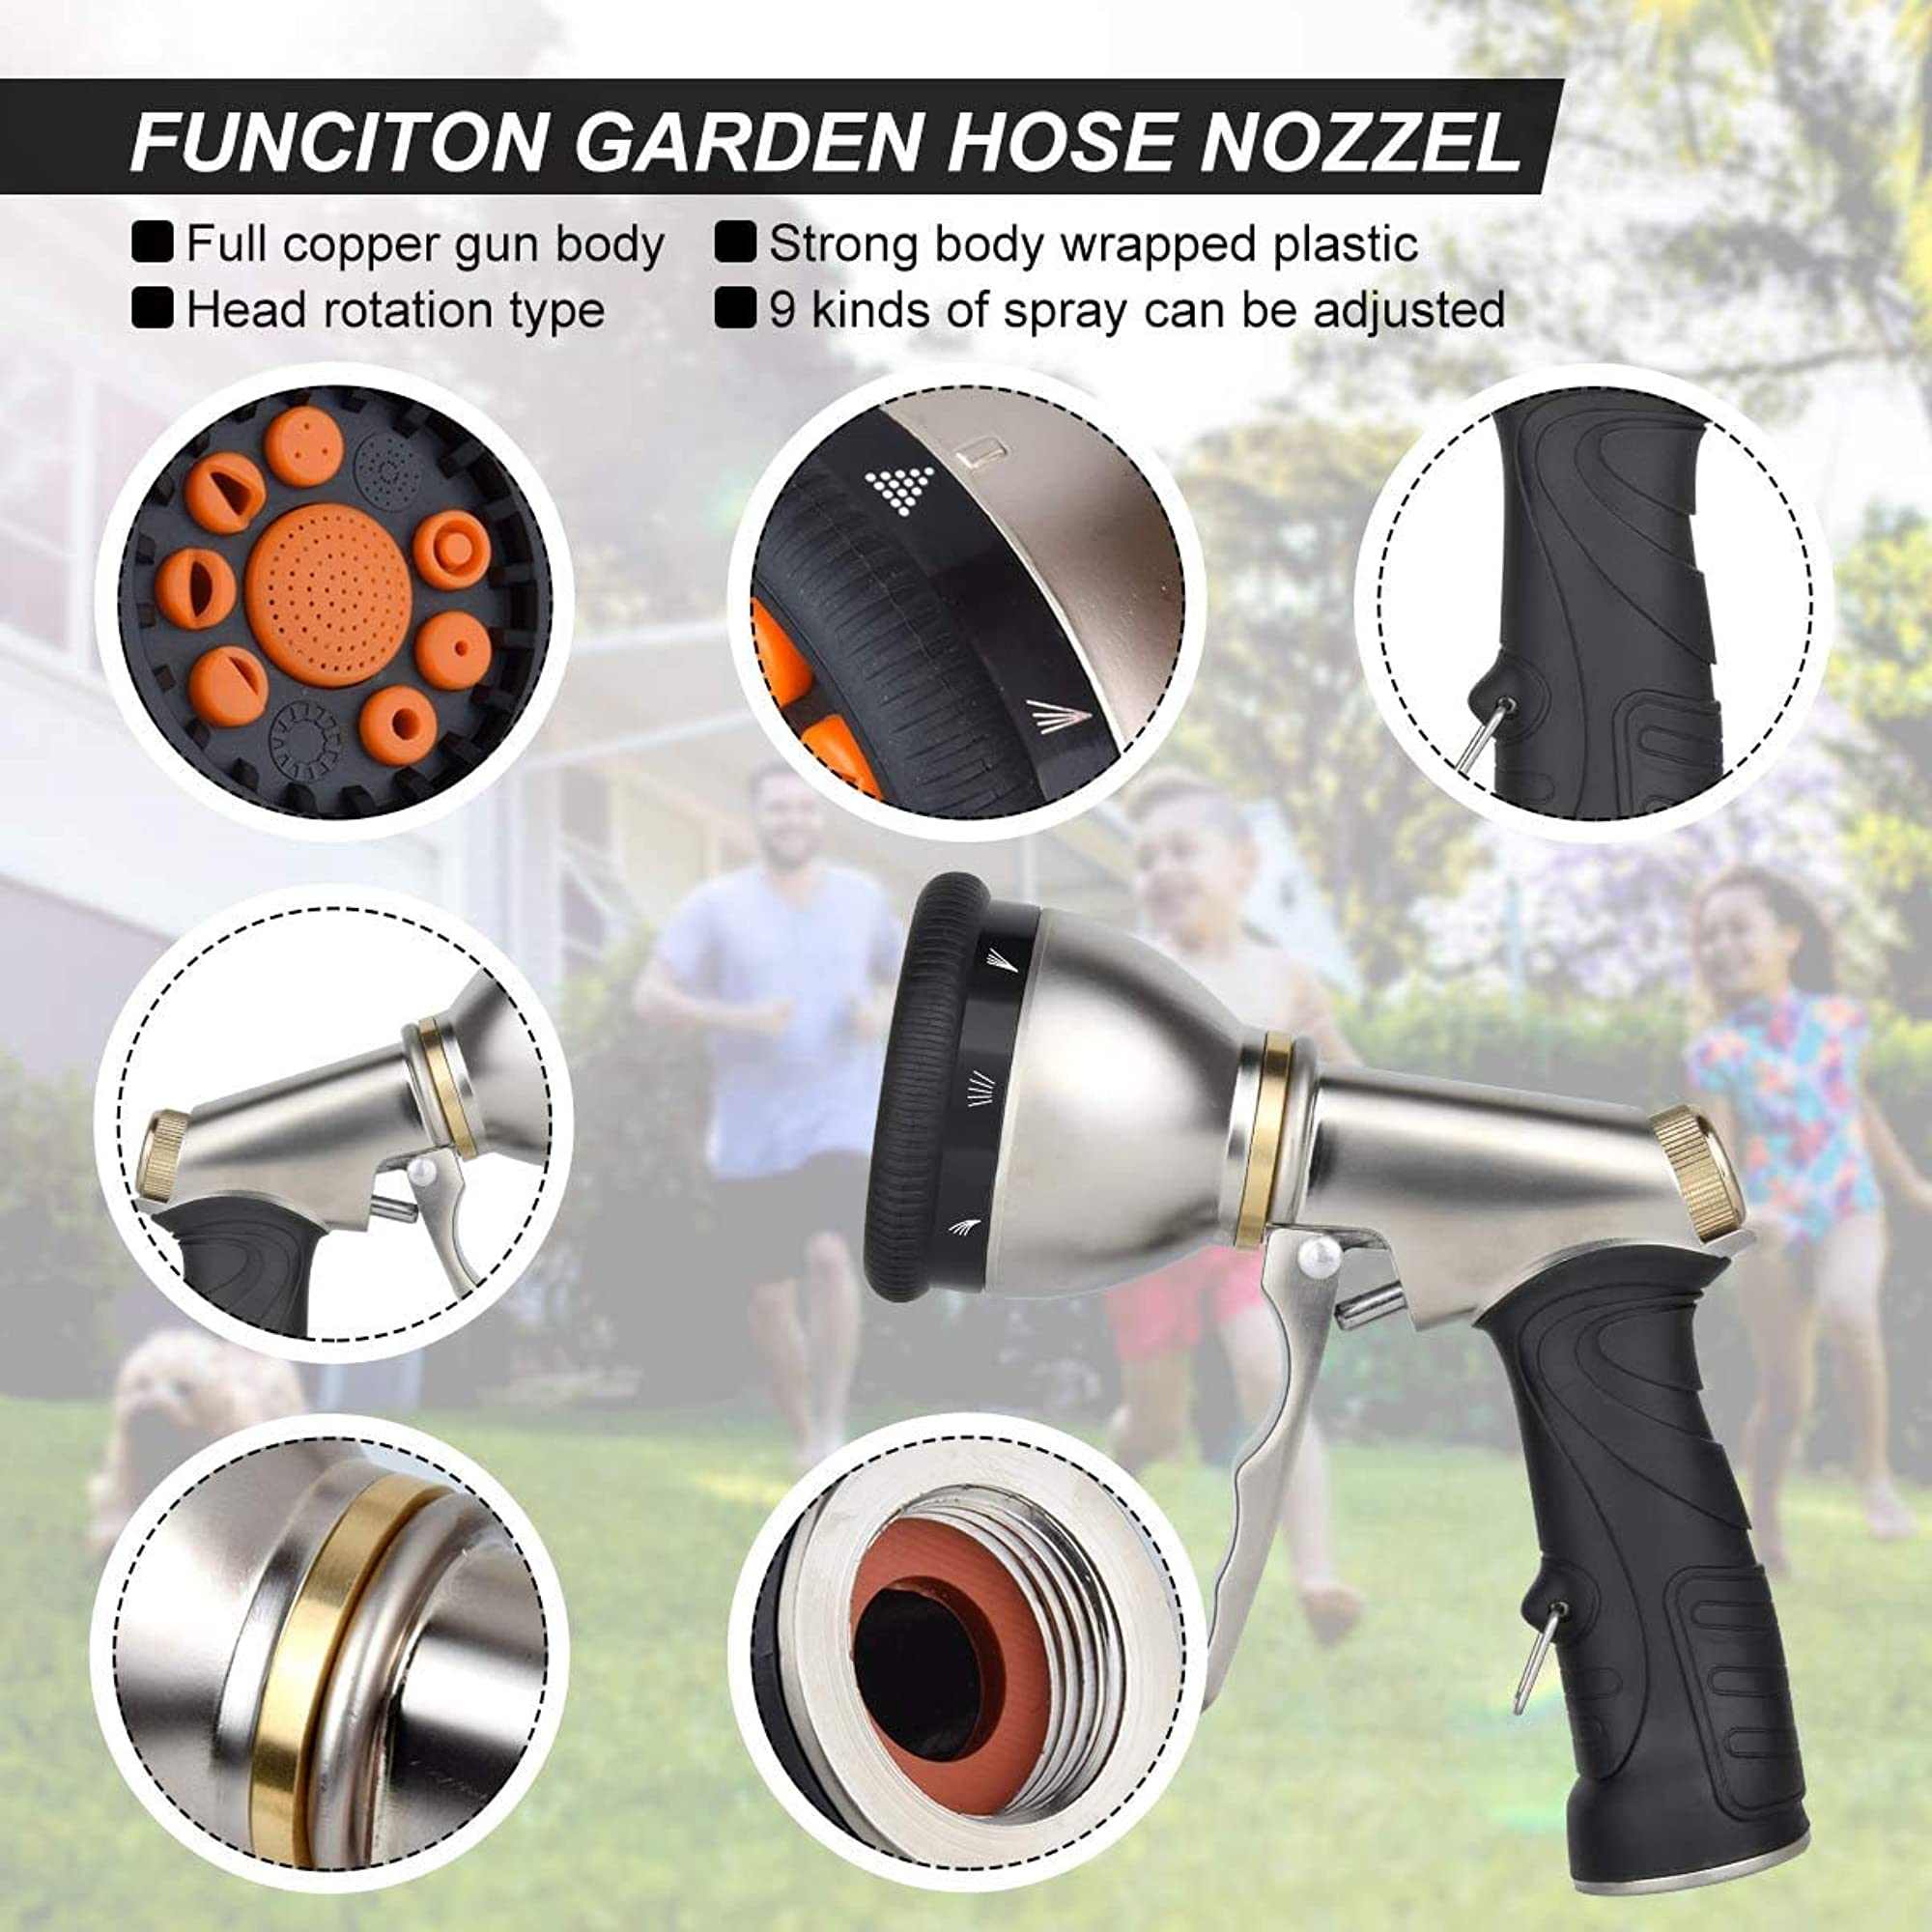 Adjustable Garden Hose Nozzles - 9 Patterns Included